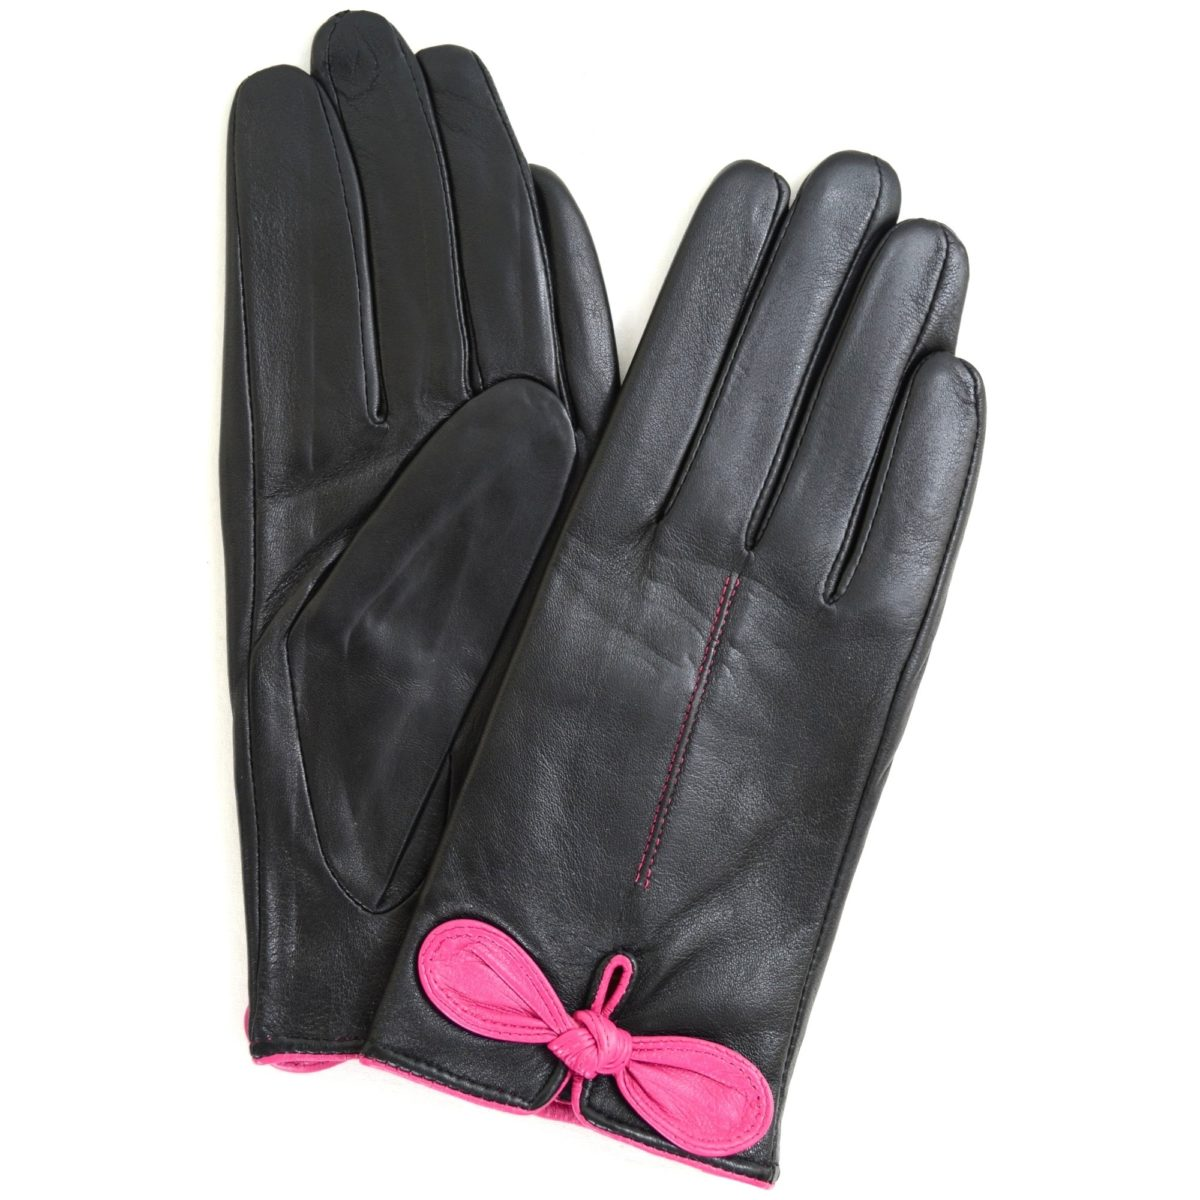 Olwen - Leather Gloves with Bow Feature - Pink